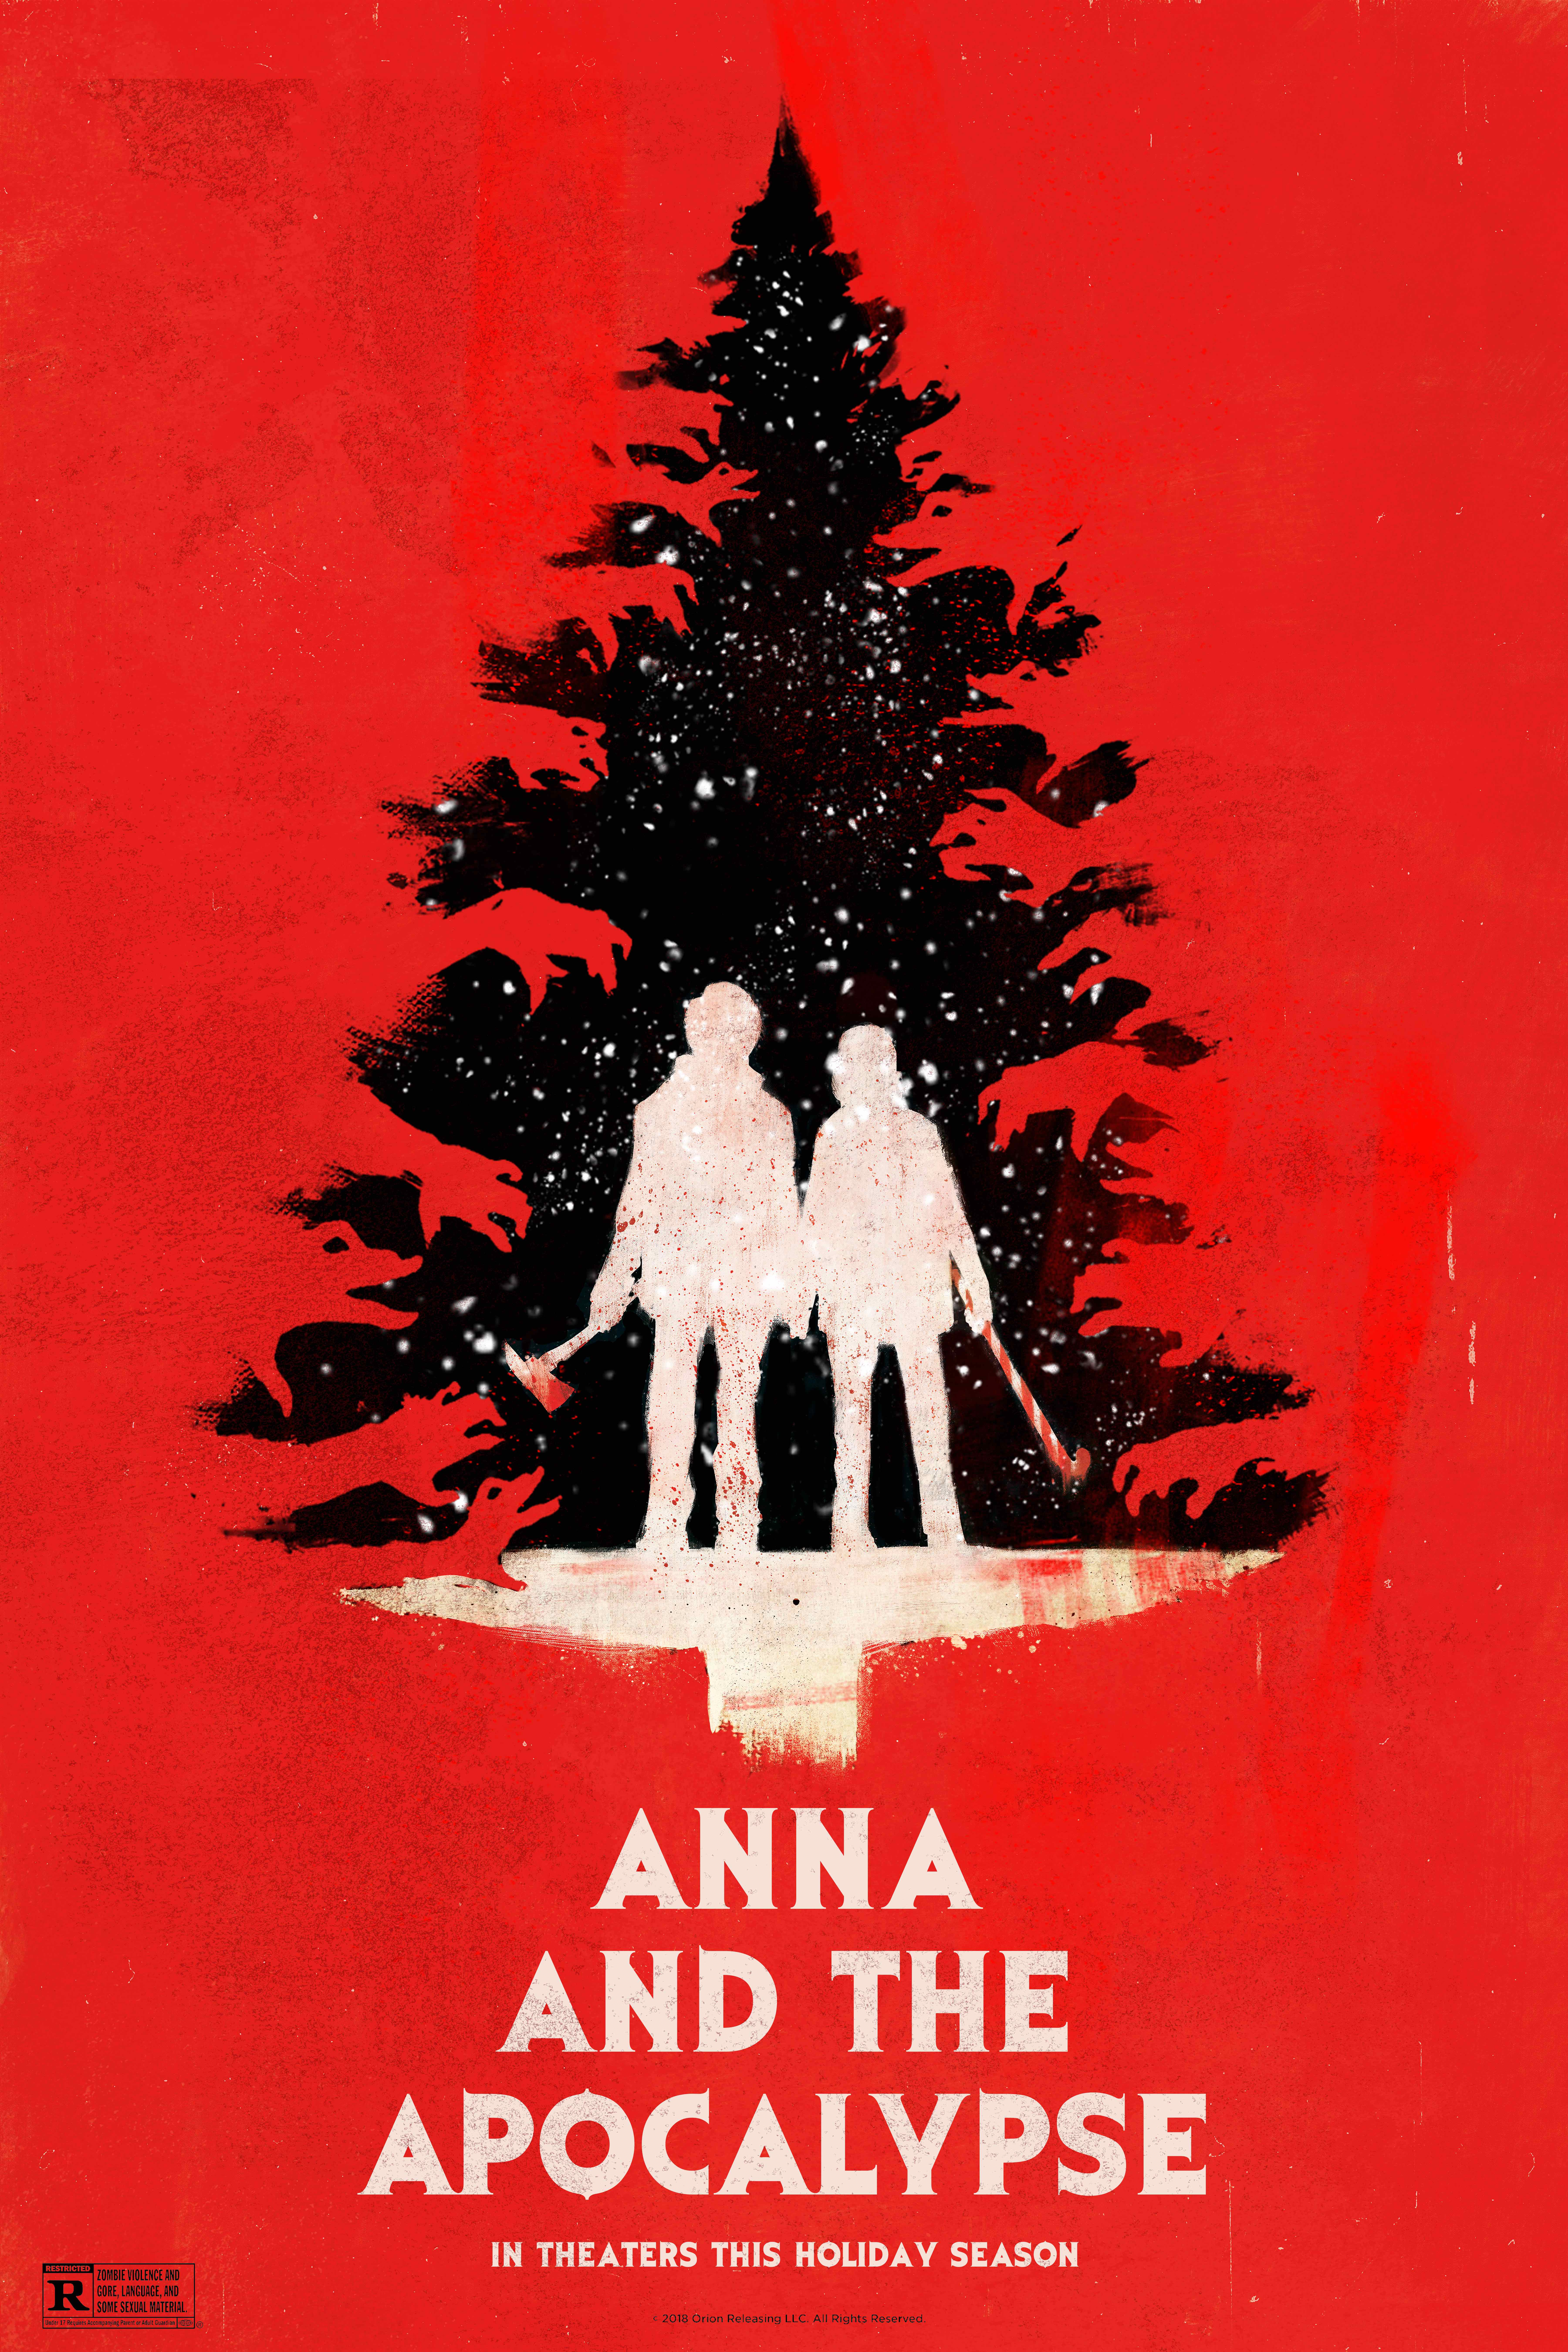 anna and the apocalypse teaser poster - Trailer de Anna and the Apocalypse